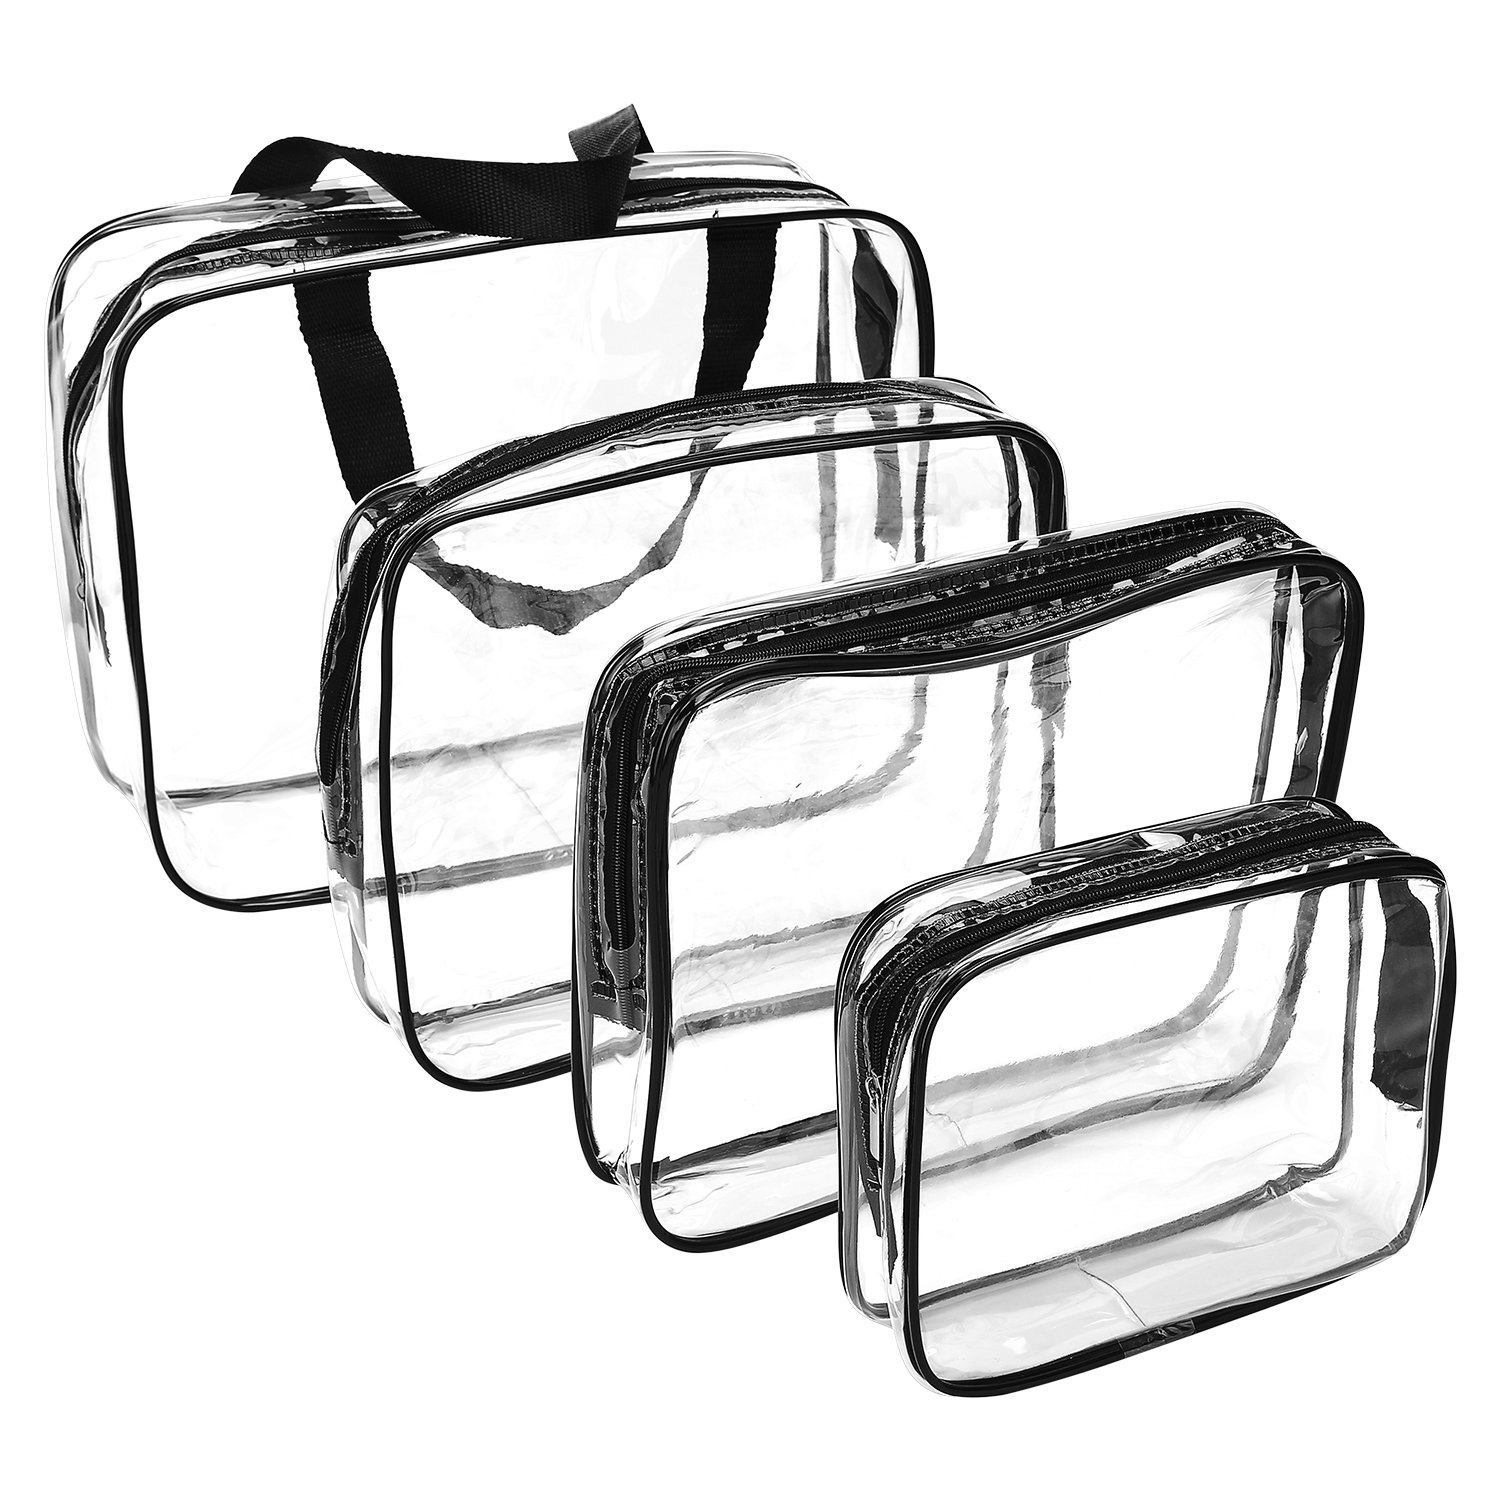 Clear Makeup Bags, Travel Bag/ Travel Toiletry Bag Kit 4 Pack Travel Toiletry Cosmetic Bag Portable Waterproof PVC Organizer Case for Men & Women(4 pack, 3 size)